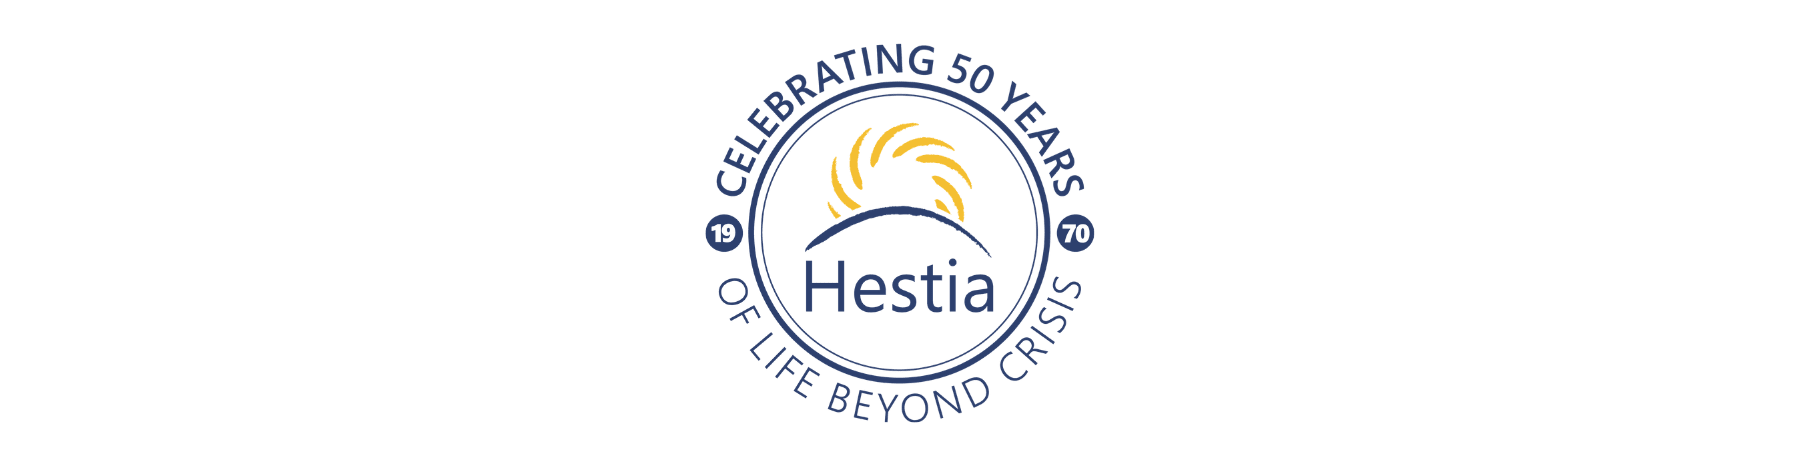 An open letter from Hestia's CEO Patrick Ryan